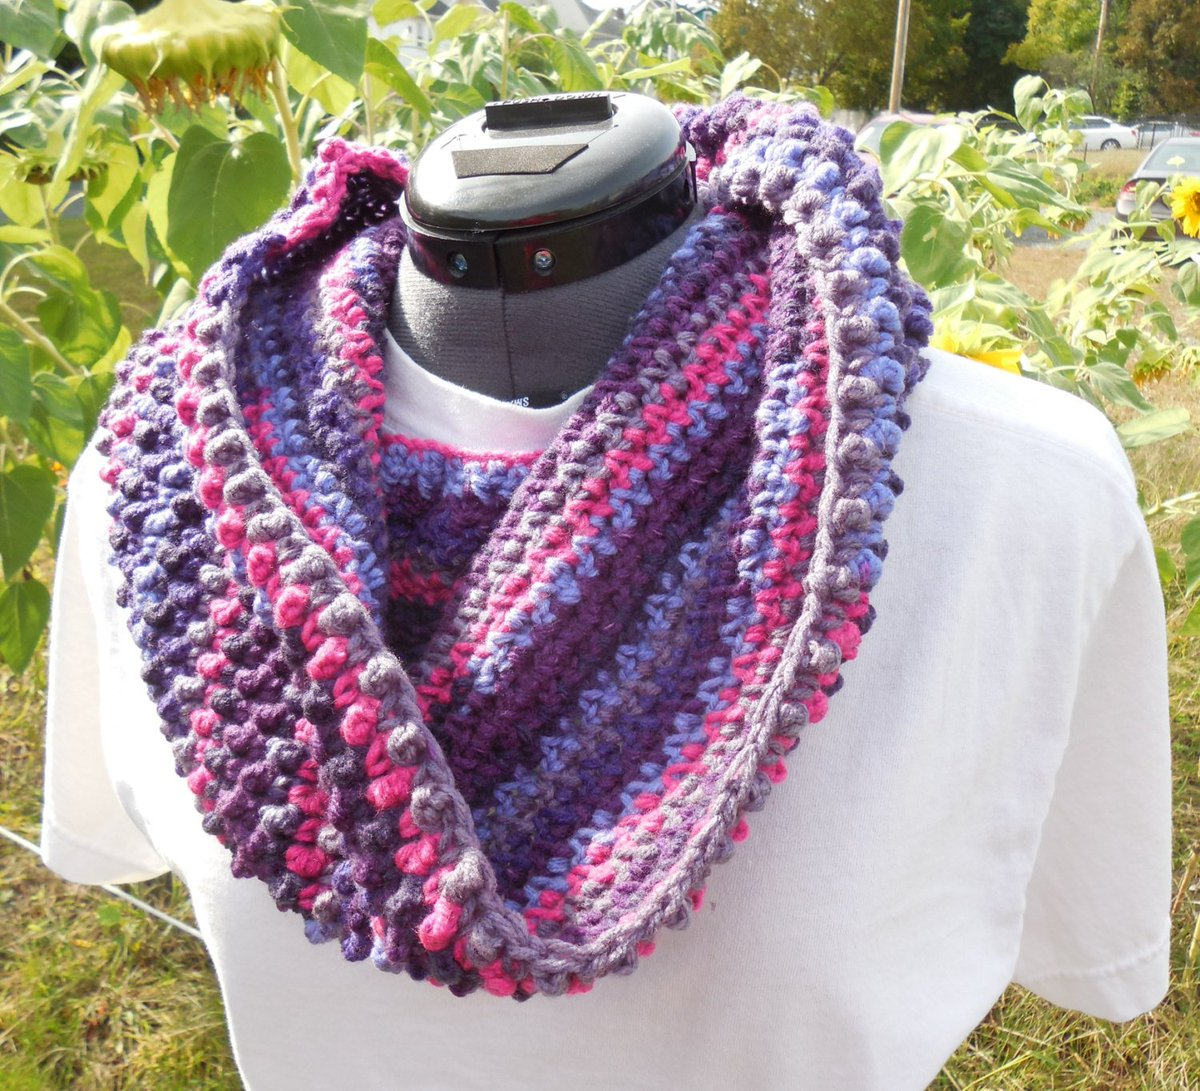 Textured Cowl Scarf, Crochet Loop, Neck Warmer Scarf, Wildberry S…  http:// tuppu.net/137ad0e1  &nbsp;   #GabbysQuilts #EpicOnEtsy <br>http://pic.twitter.com/mNLYonIjEw